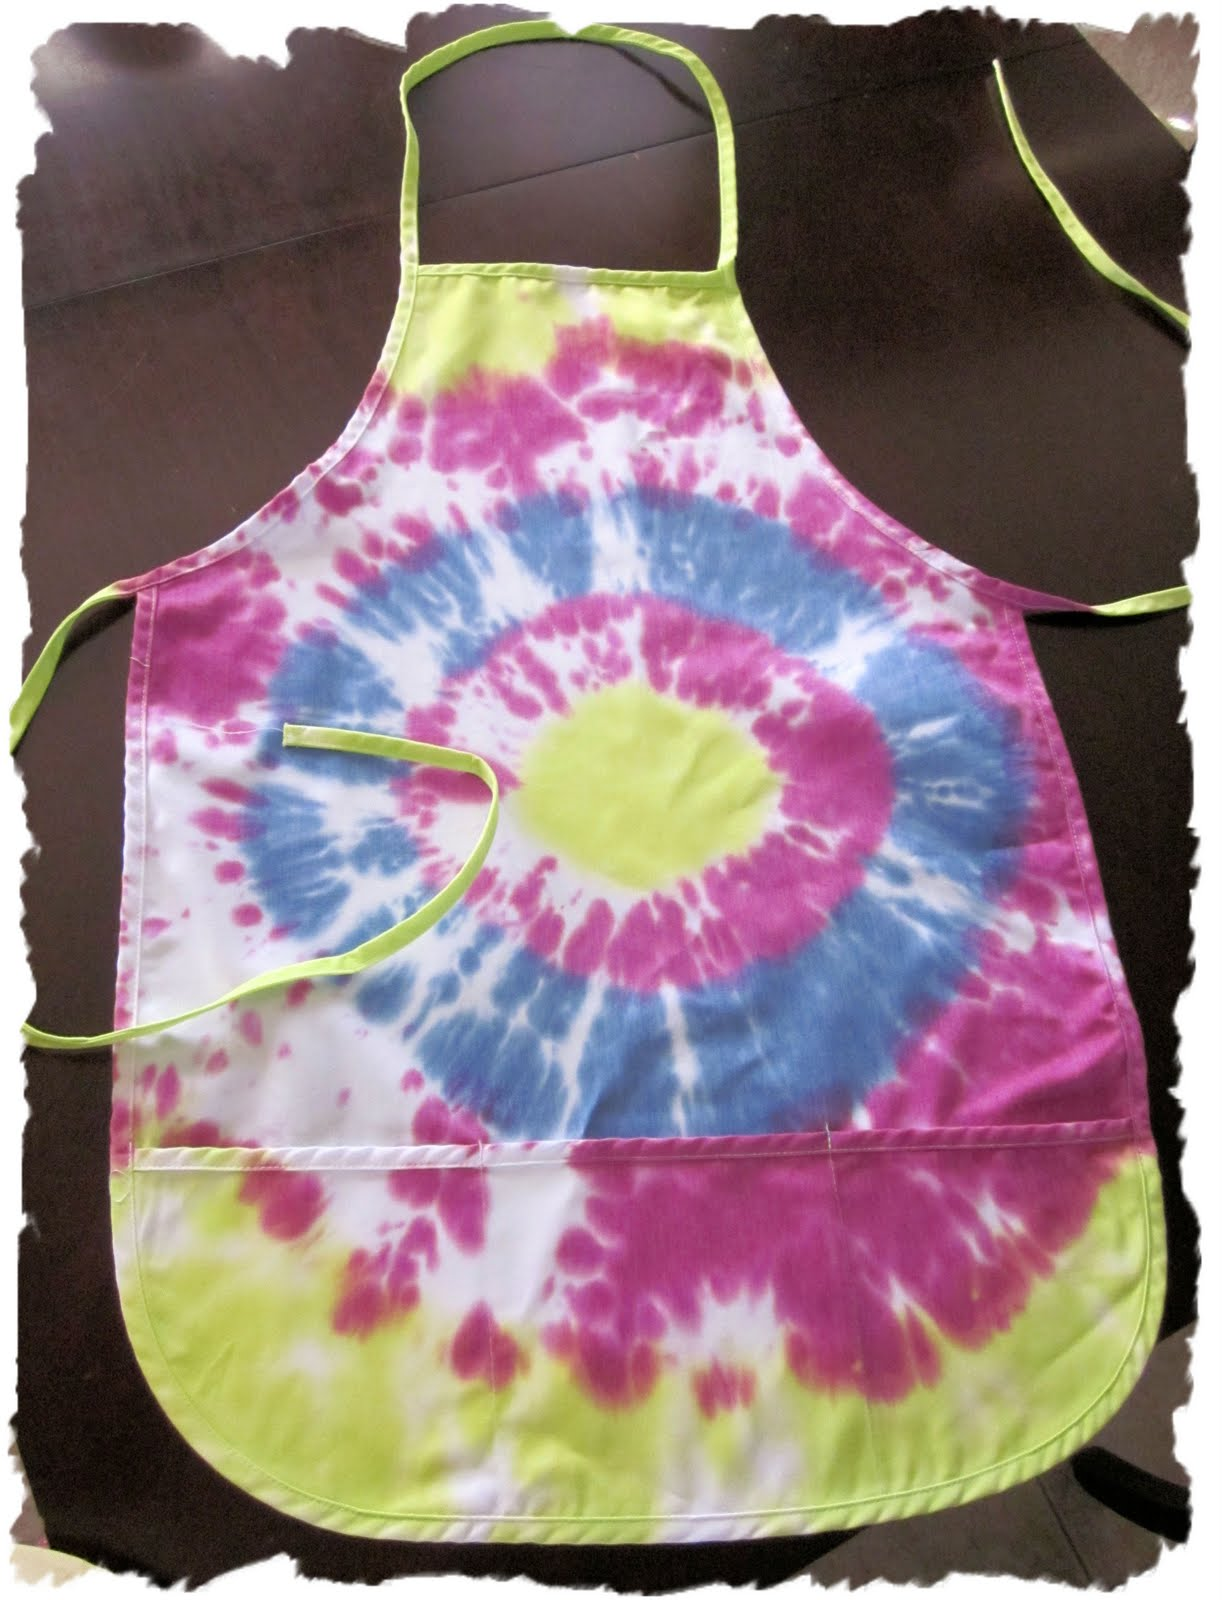 Totally Groovy Modern Nails With A Mod Flair: Eclectic Nut: Tie-Dye Apron